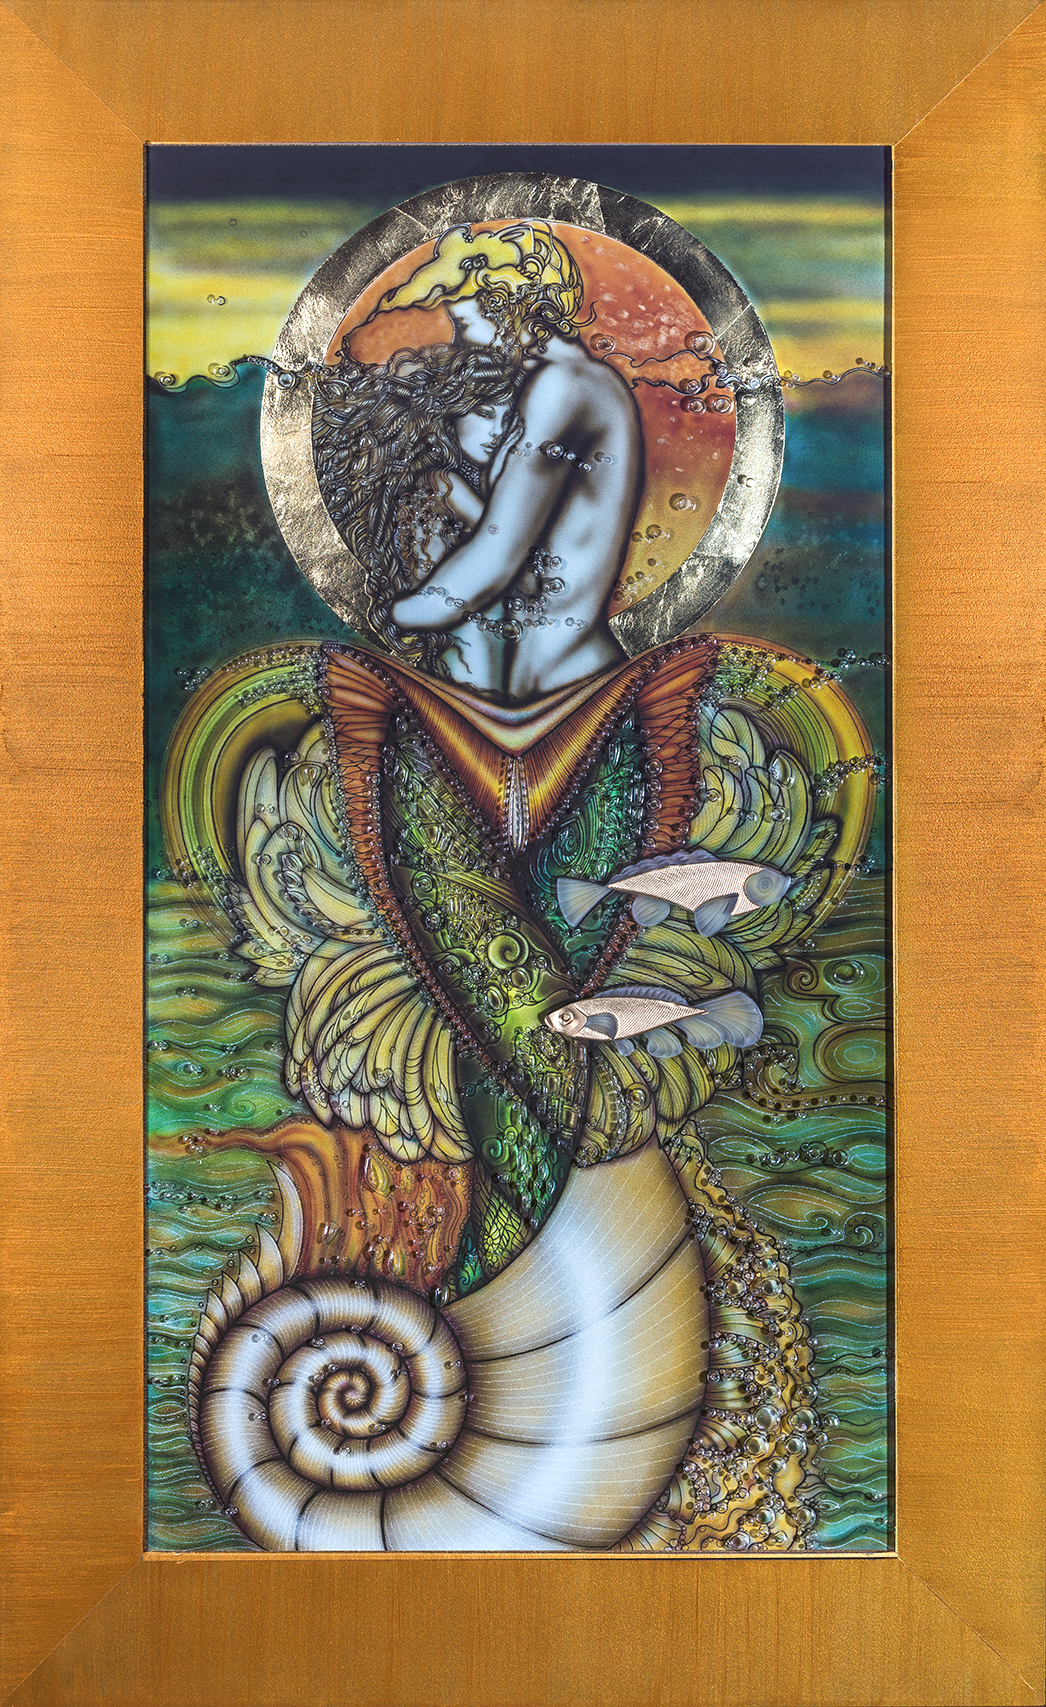 """lovers - Dimensions: 16"""" x 30""""Weight (Unframed): 15lbsMedium: 3/8"""" Glass, Gold Leaf, mixed mediaAbout the Art:A moment in time of two mermaids, in love. This iconic piece was created using unique paint-on glass techniques, detailed airbrushed liquid graphite, hand engraving, gold leaf, and sandblasting."""